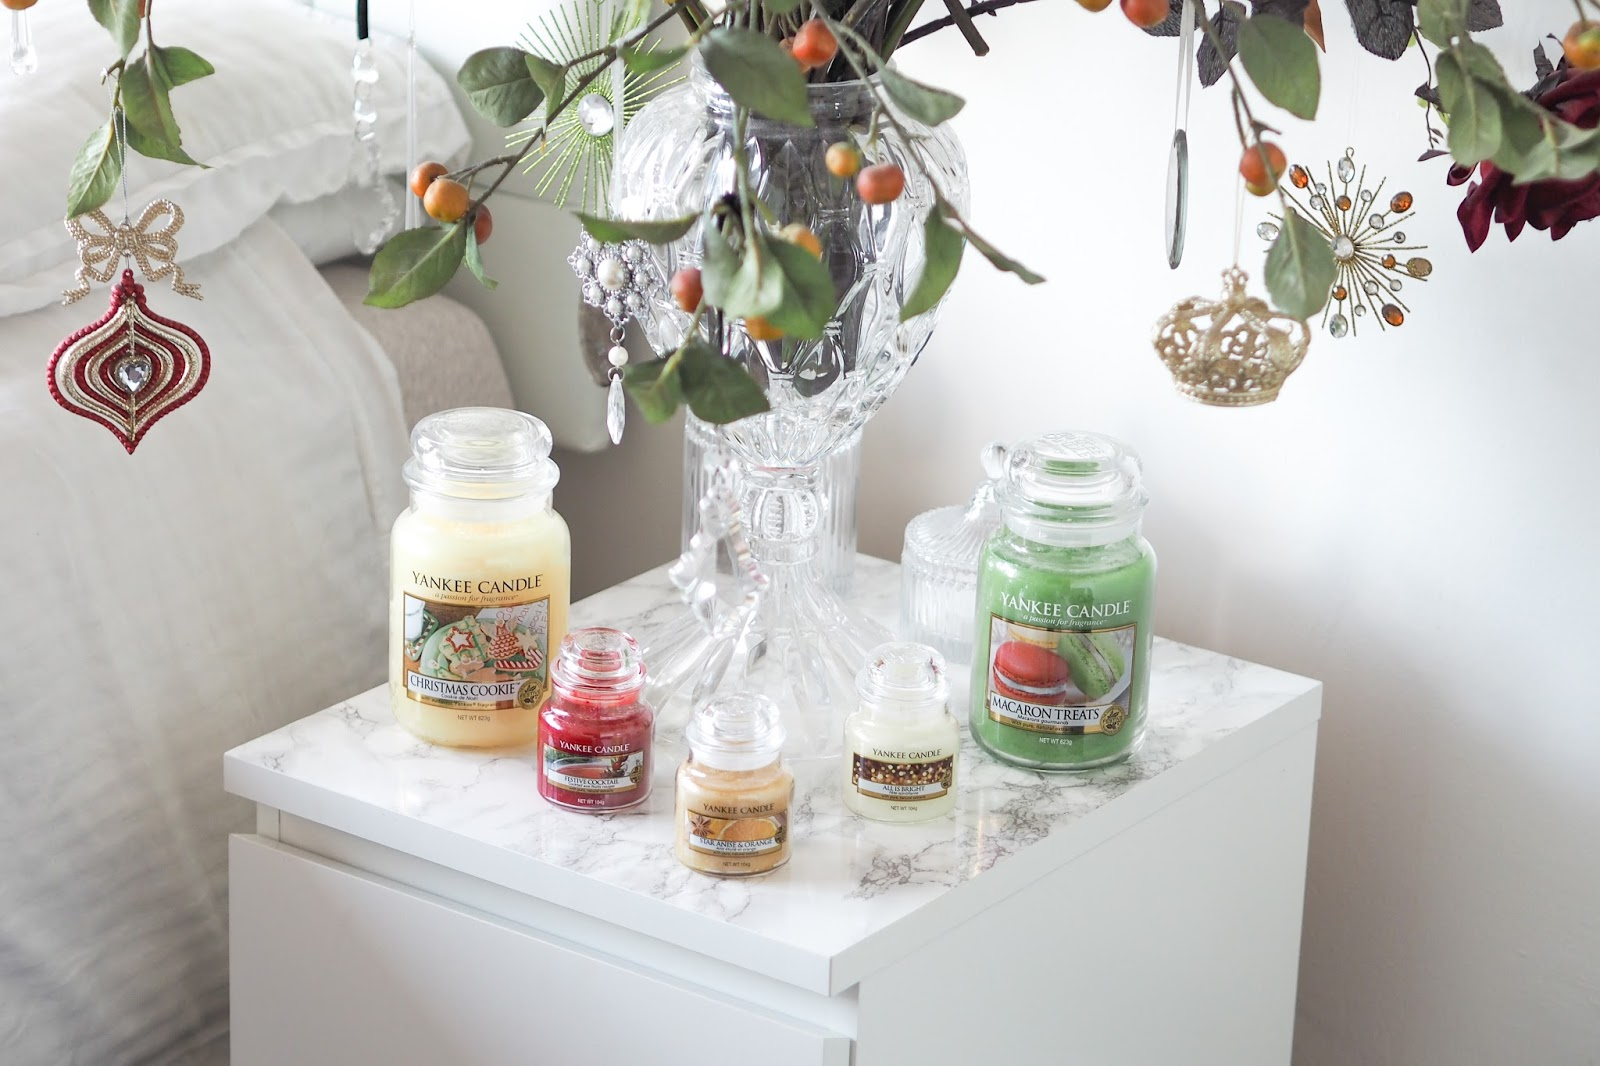 Festive Yankee Candle Review